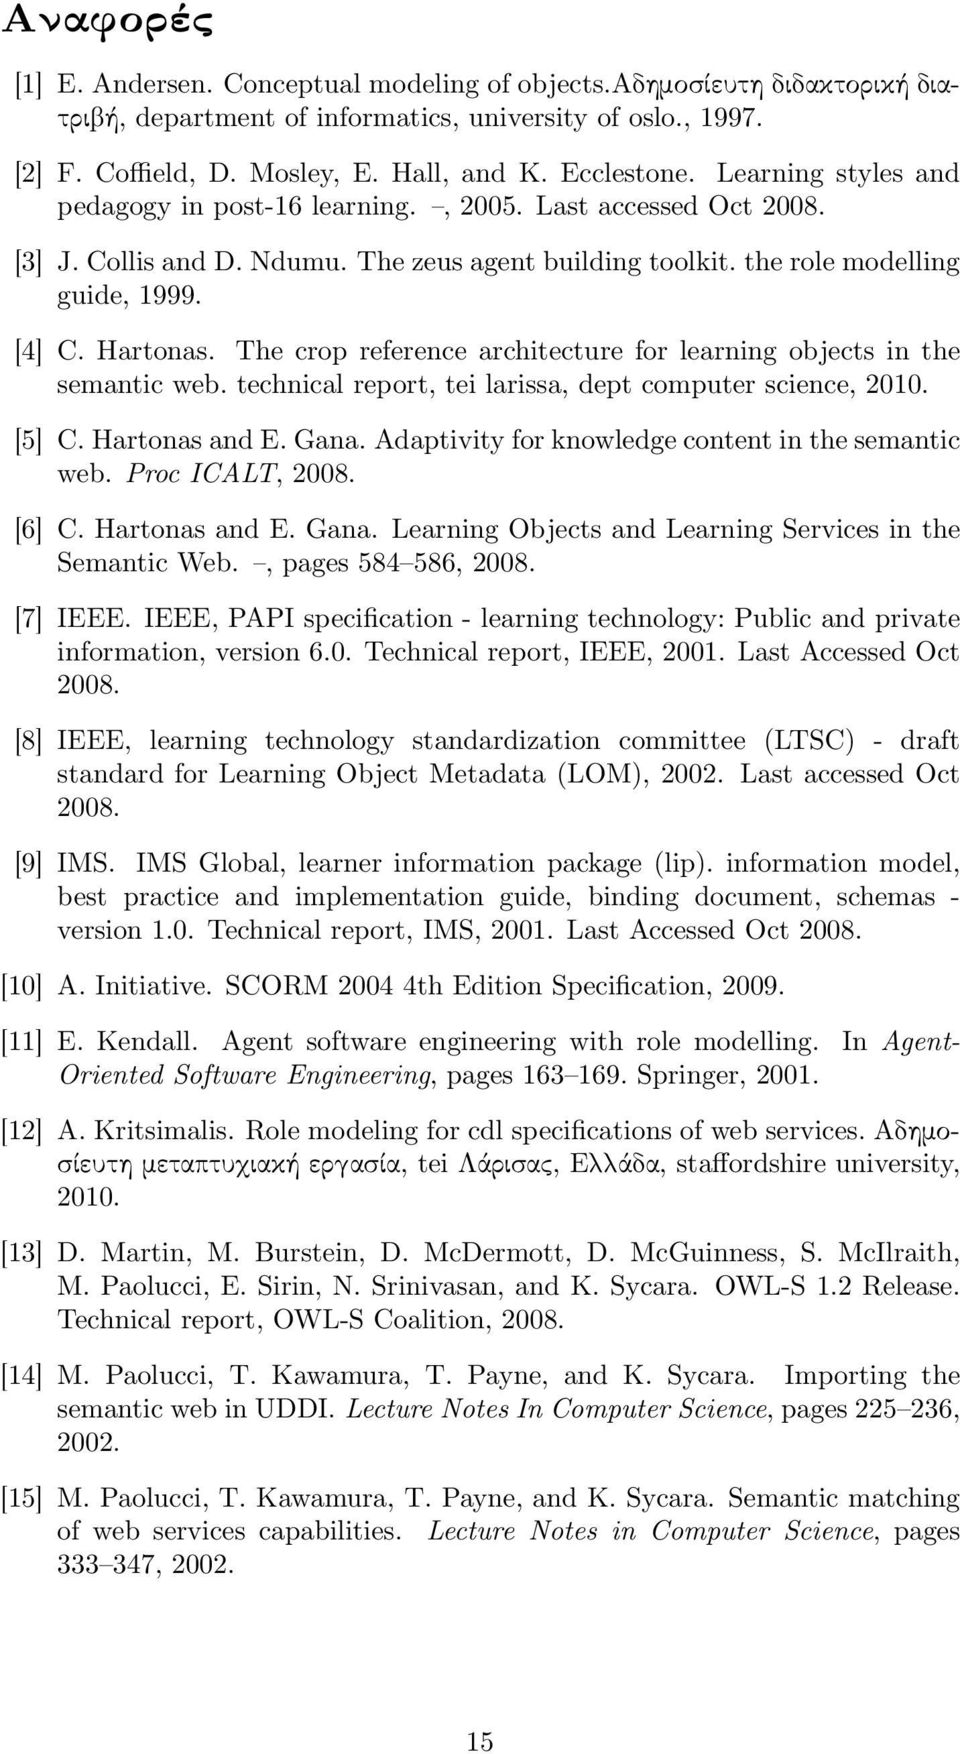 The crop reference architecture for learning objects in the semantic web. technical report, tei larissa, dept computer science, 2010. [5] C. Hartonas and E. Gana.